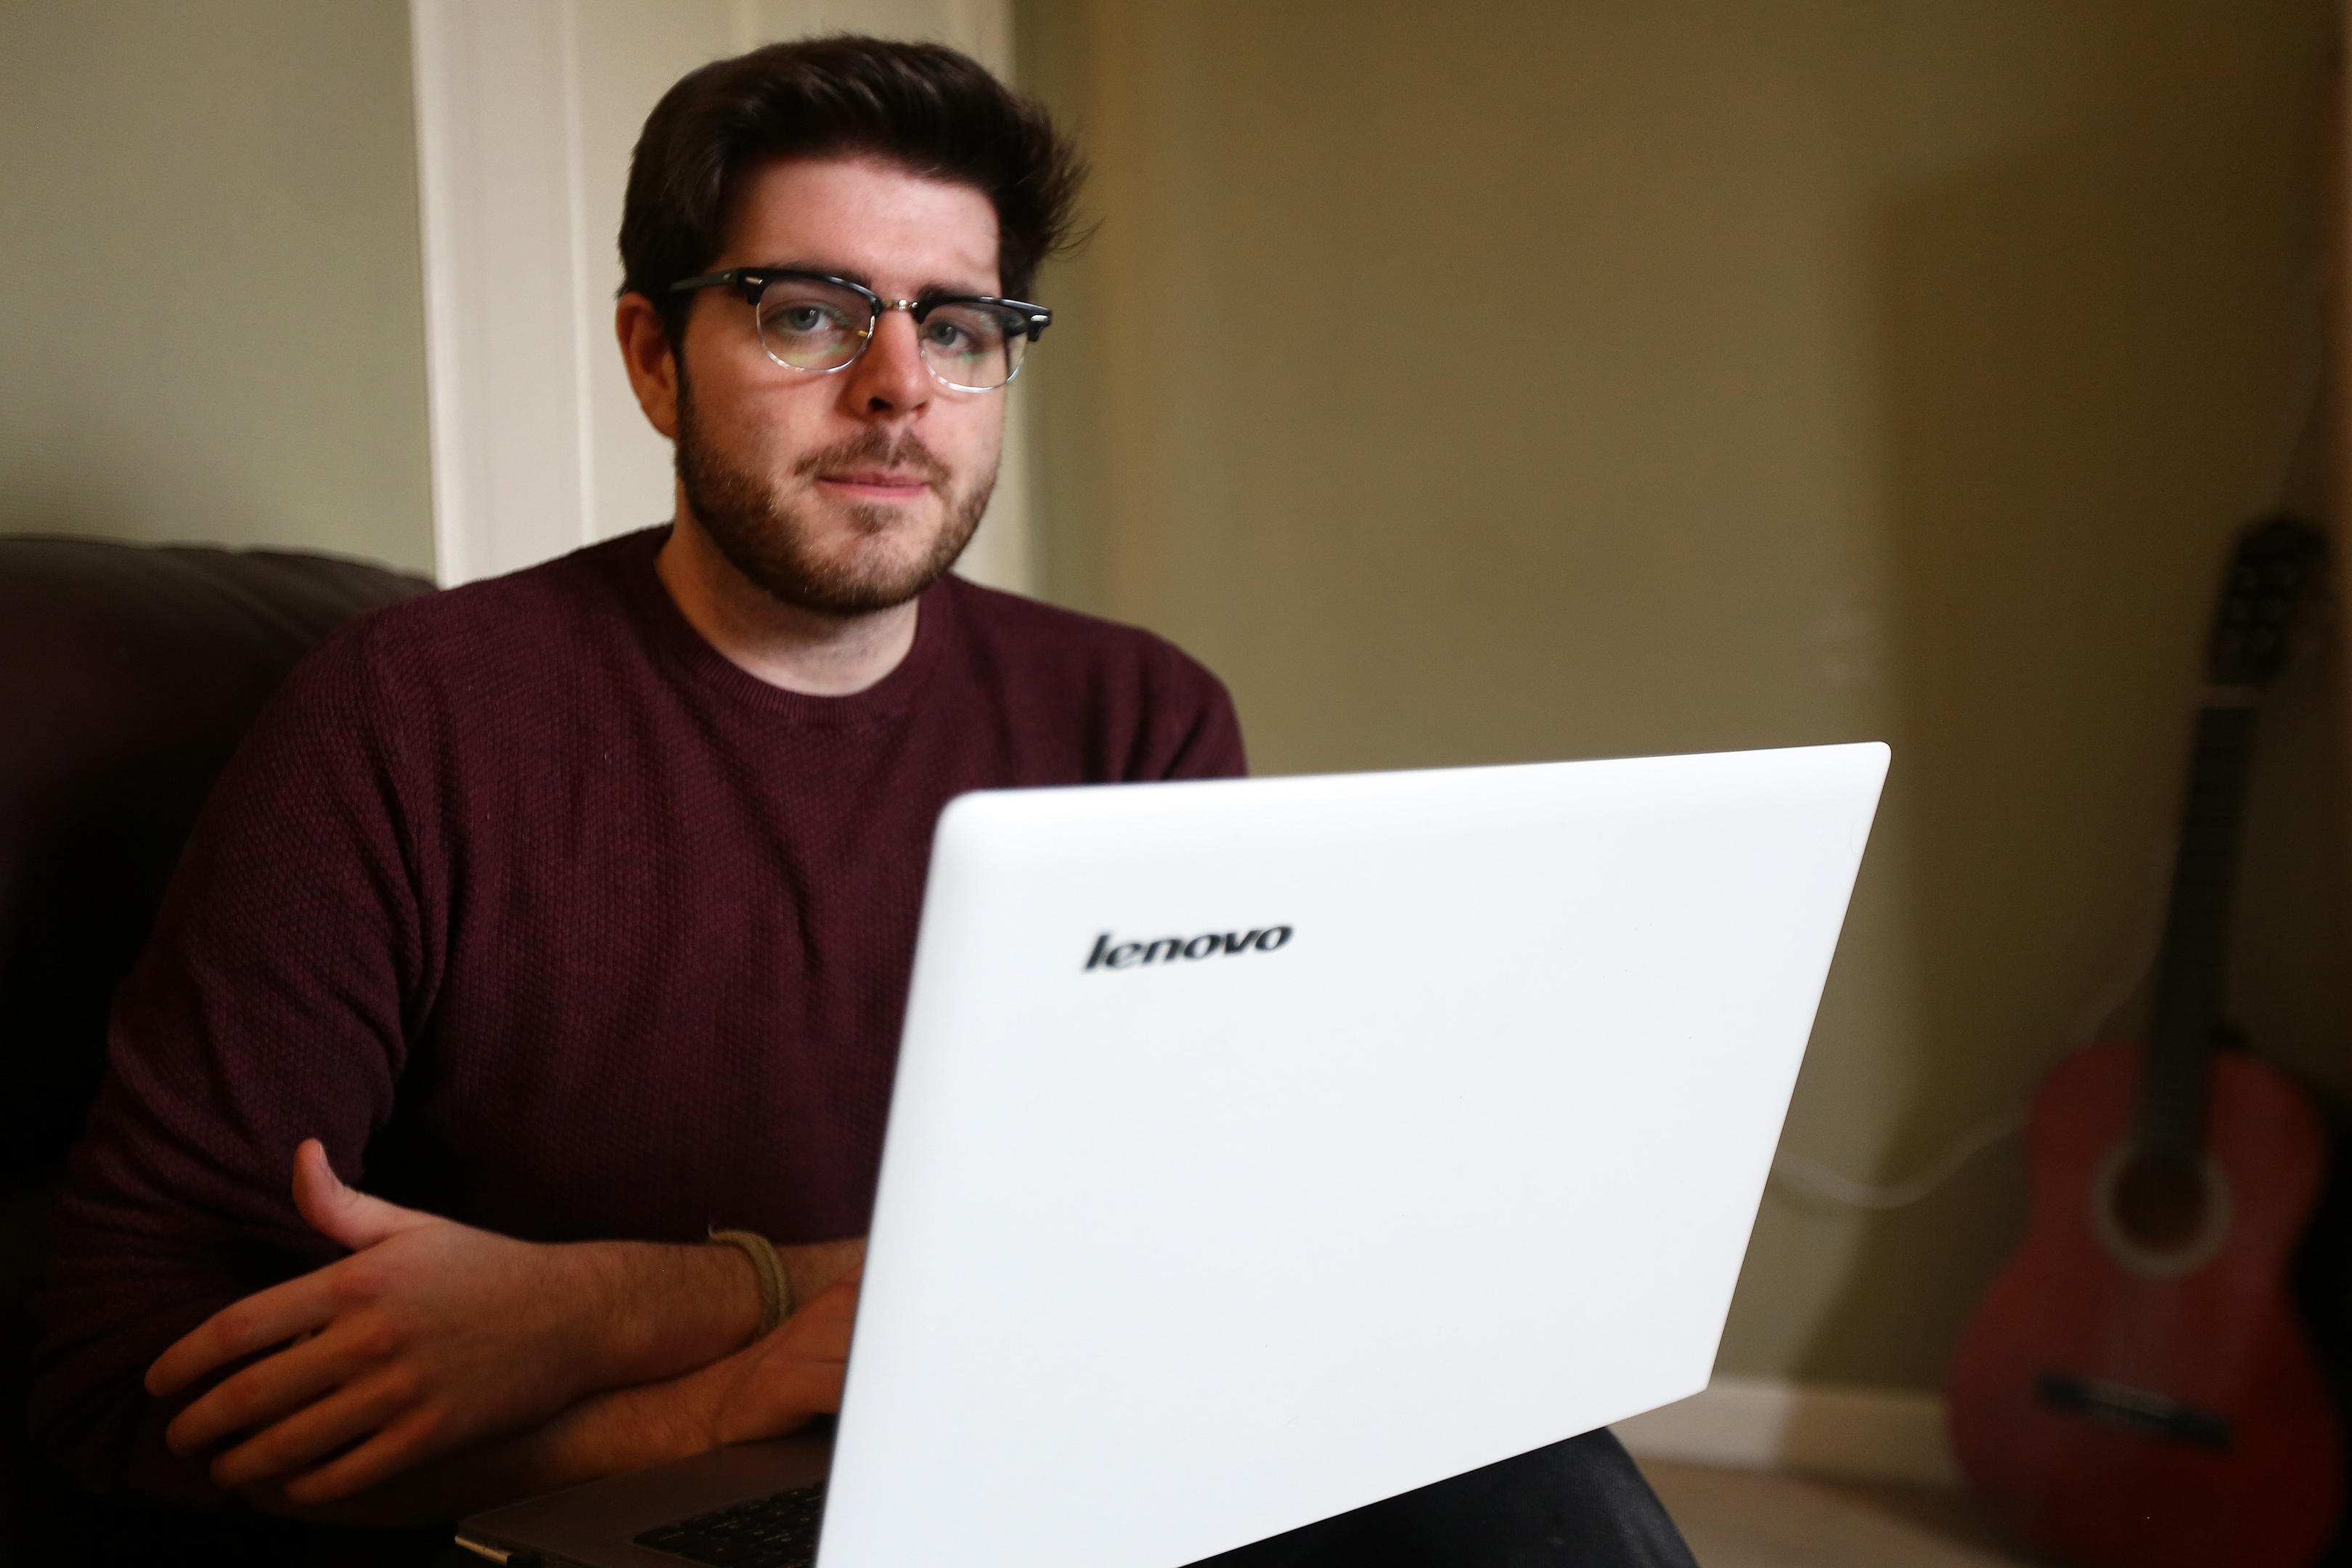 Sean Smith made an online appeal for help finding work after struggling to find an employer who knows abut ASDs